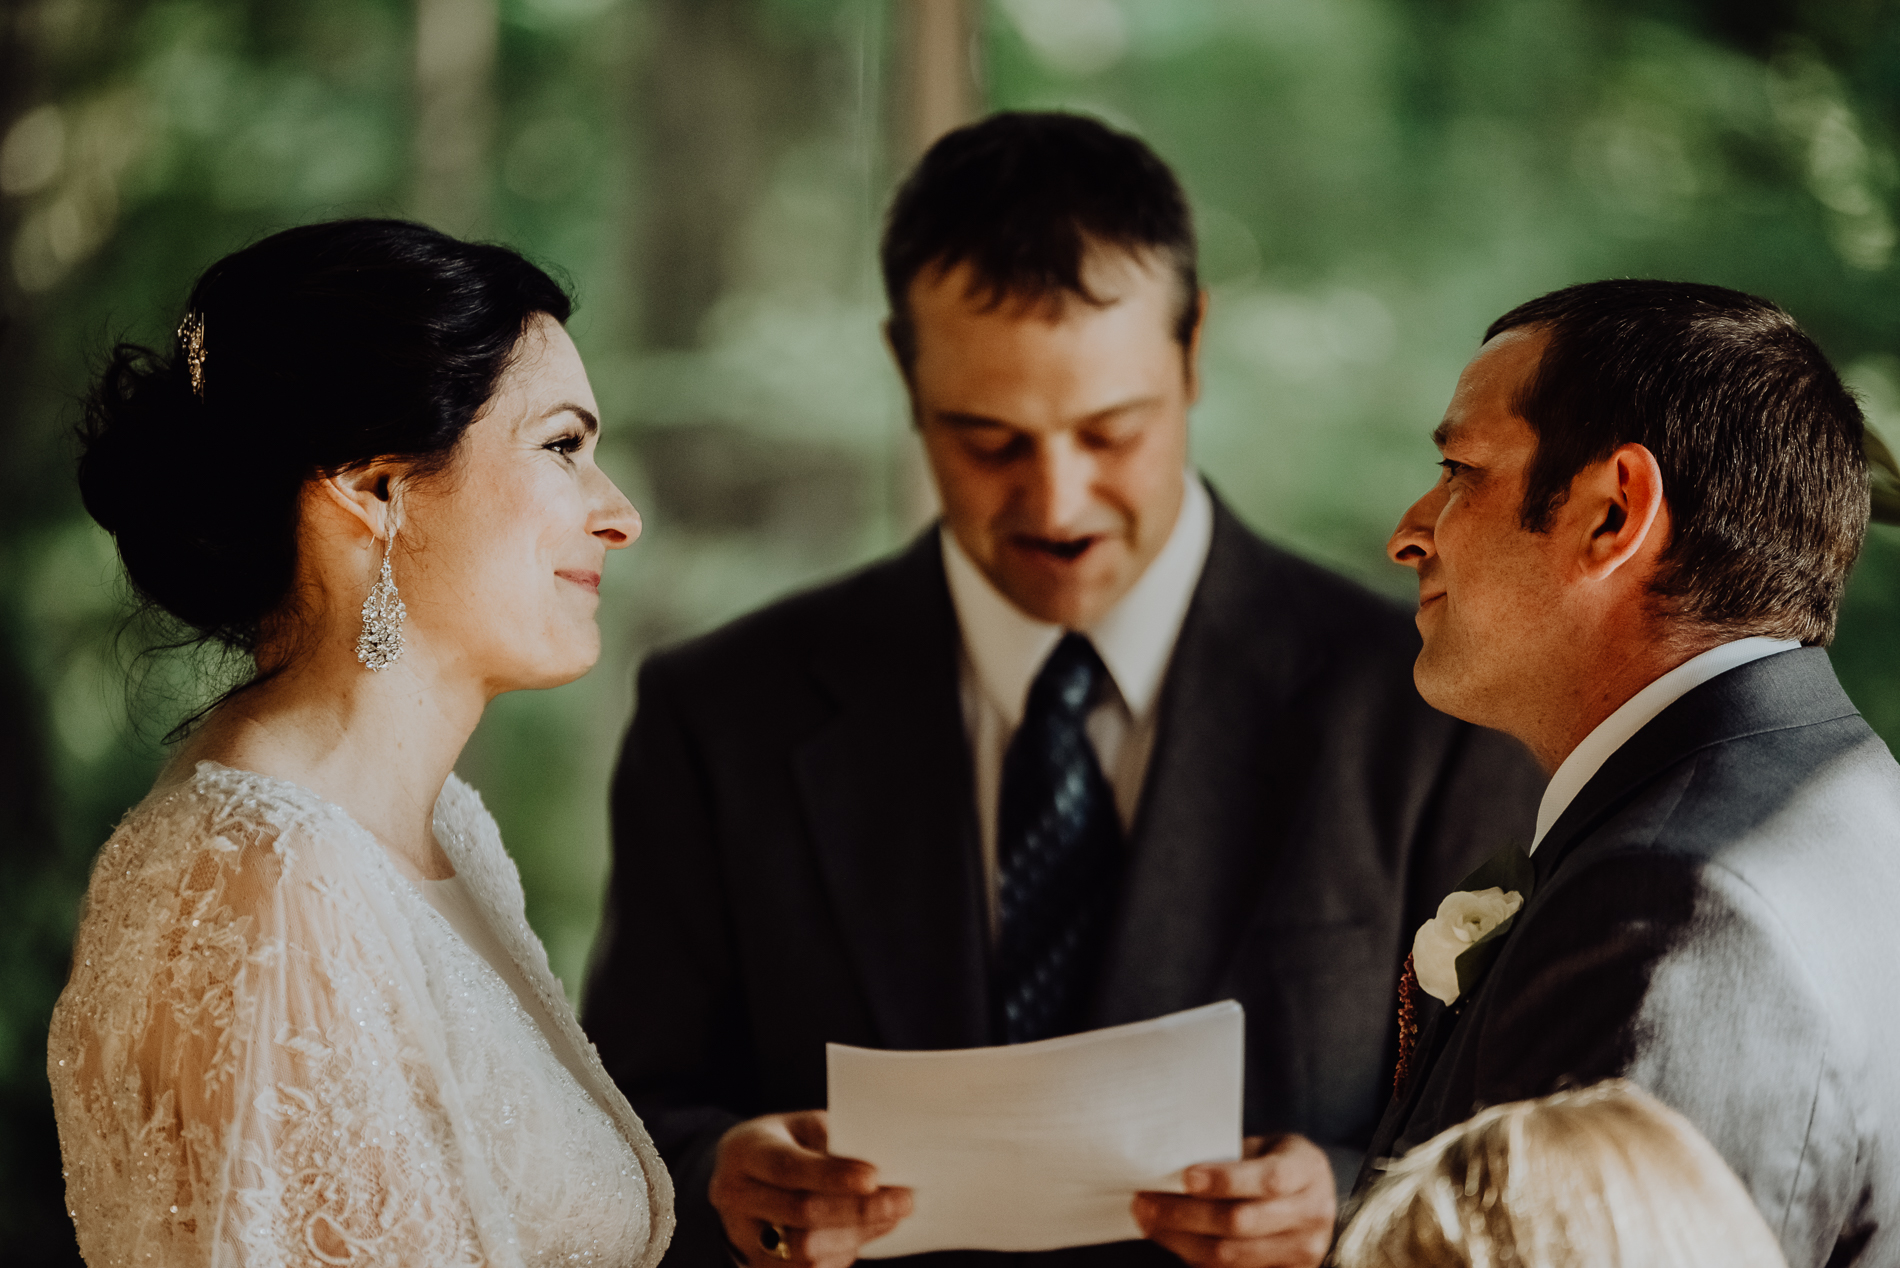 julia and dennis wedding at graceland by wilde company-114.jpg